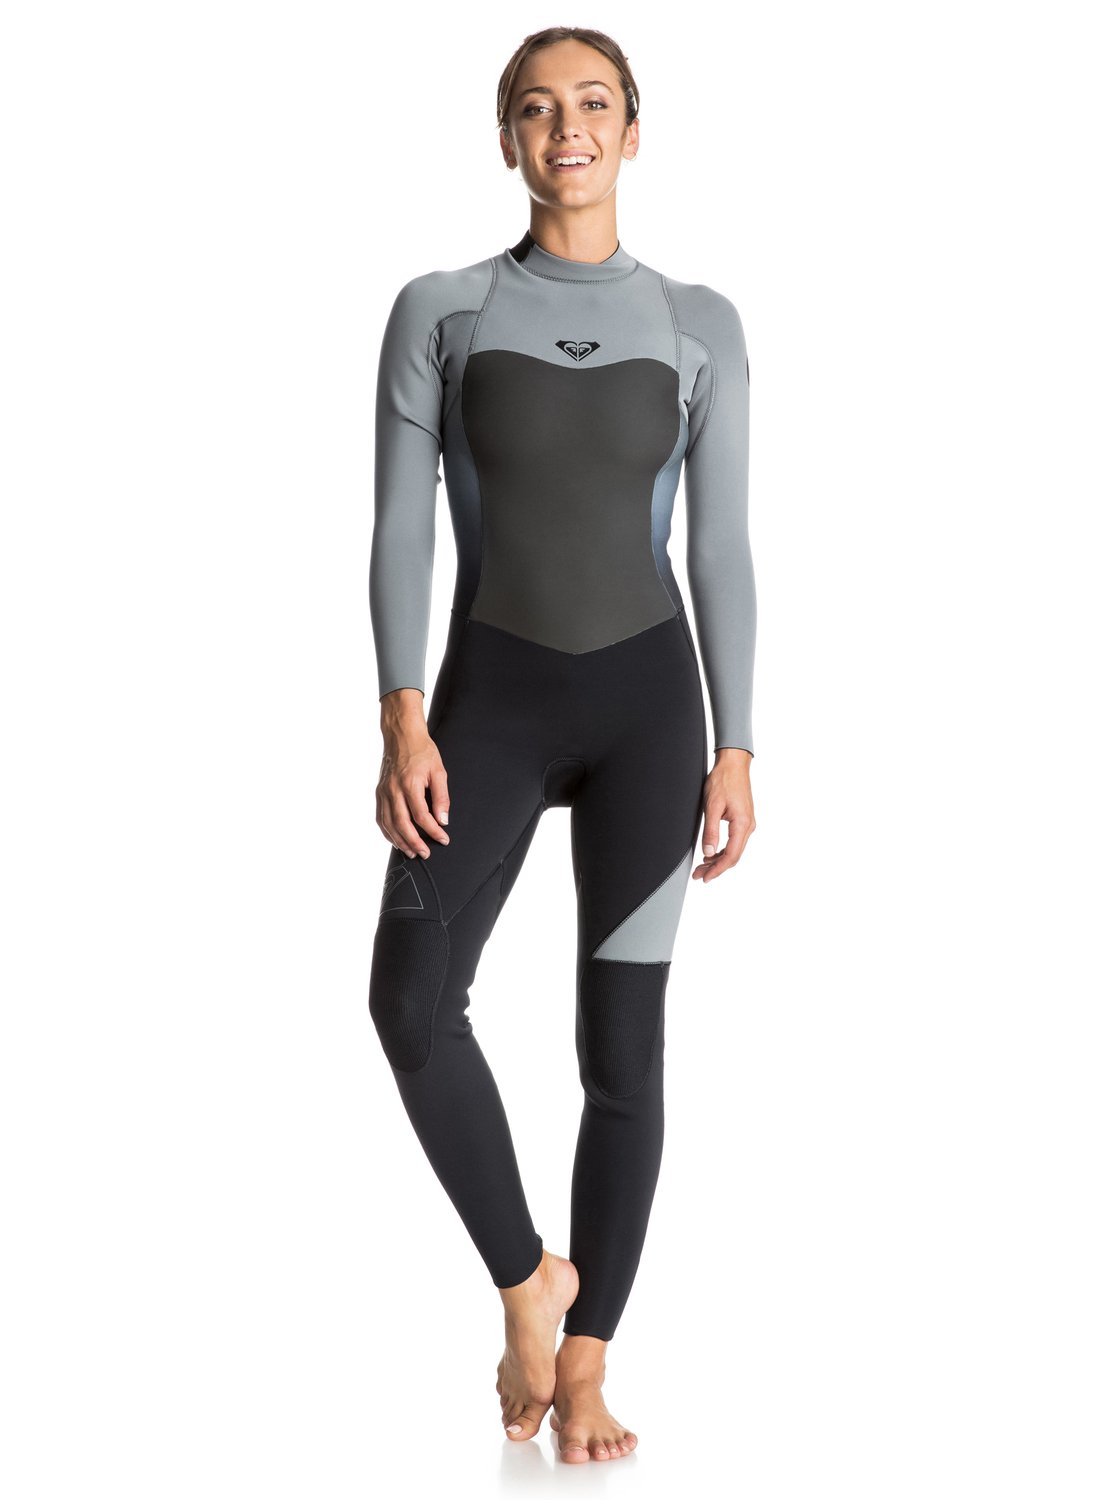 Длинный женский гидрокостюм (фулсьют) Syncro 4/3mm на спинной молнииMaking waves with a selection of cold water wetsuits made for the brave, ROXY has created this Syncro 4/3mm steamer. Designed for winter warriors with an addiction to the shoreline, this women's wetsuit has been engineered from our F'N Lite neoprene which offers instant protection and added warmth thanks to its integrated air cell technology.<br>